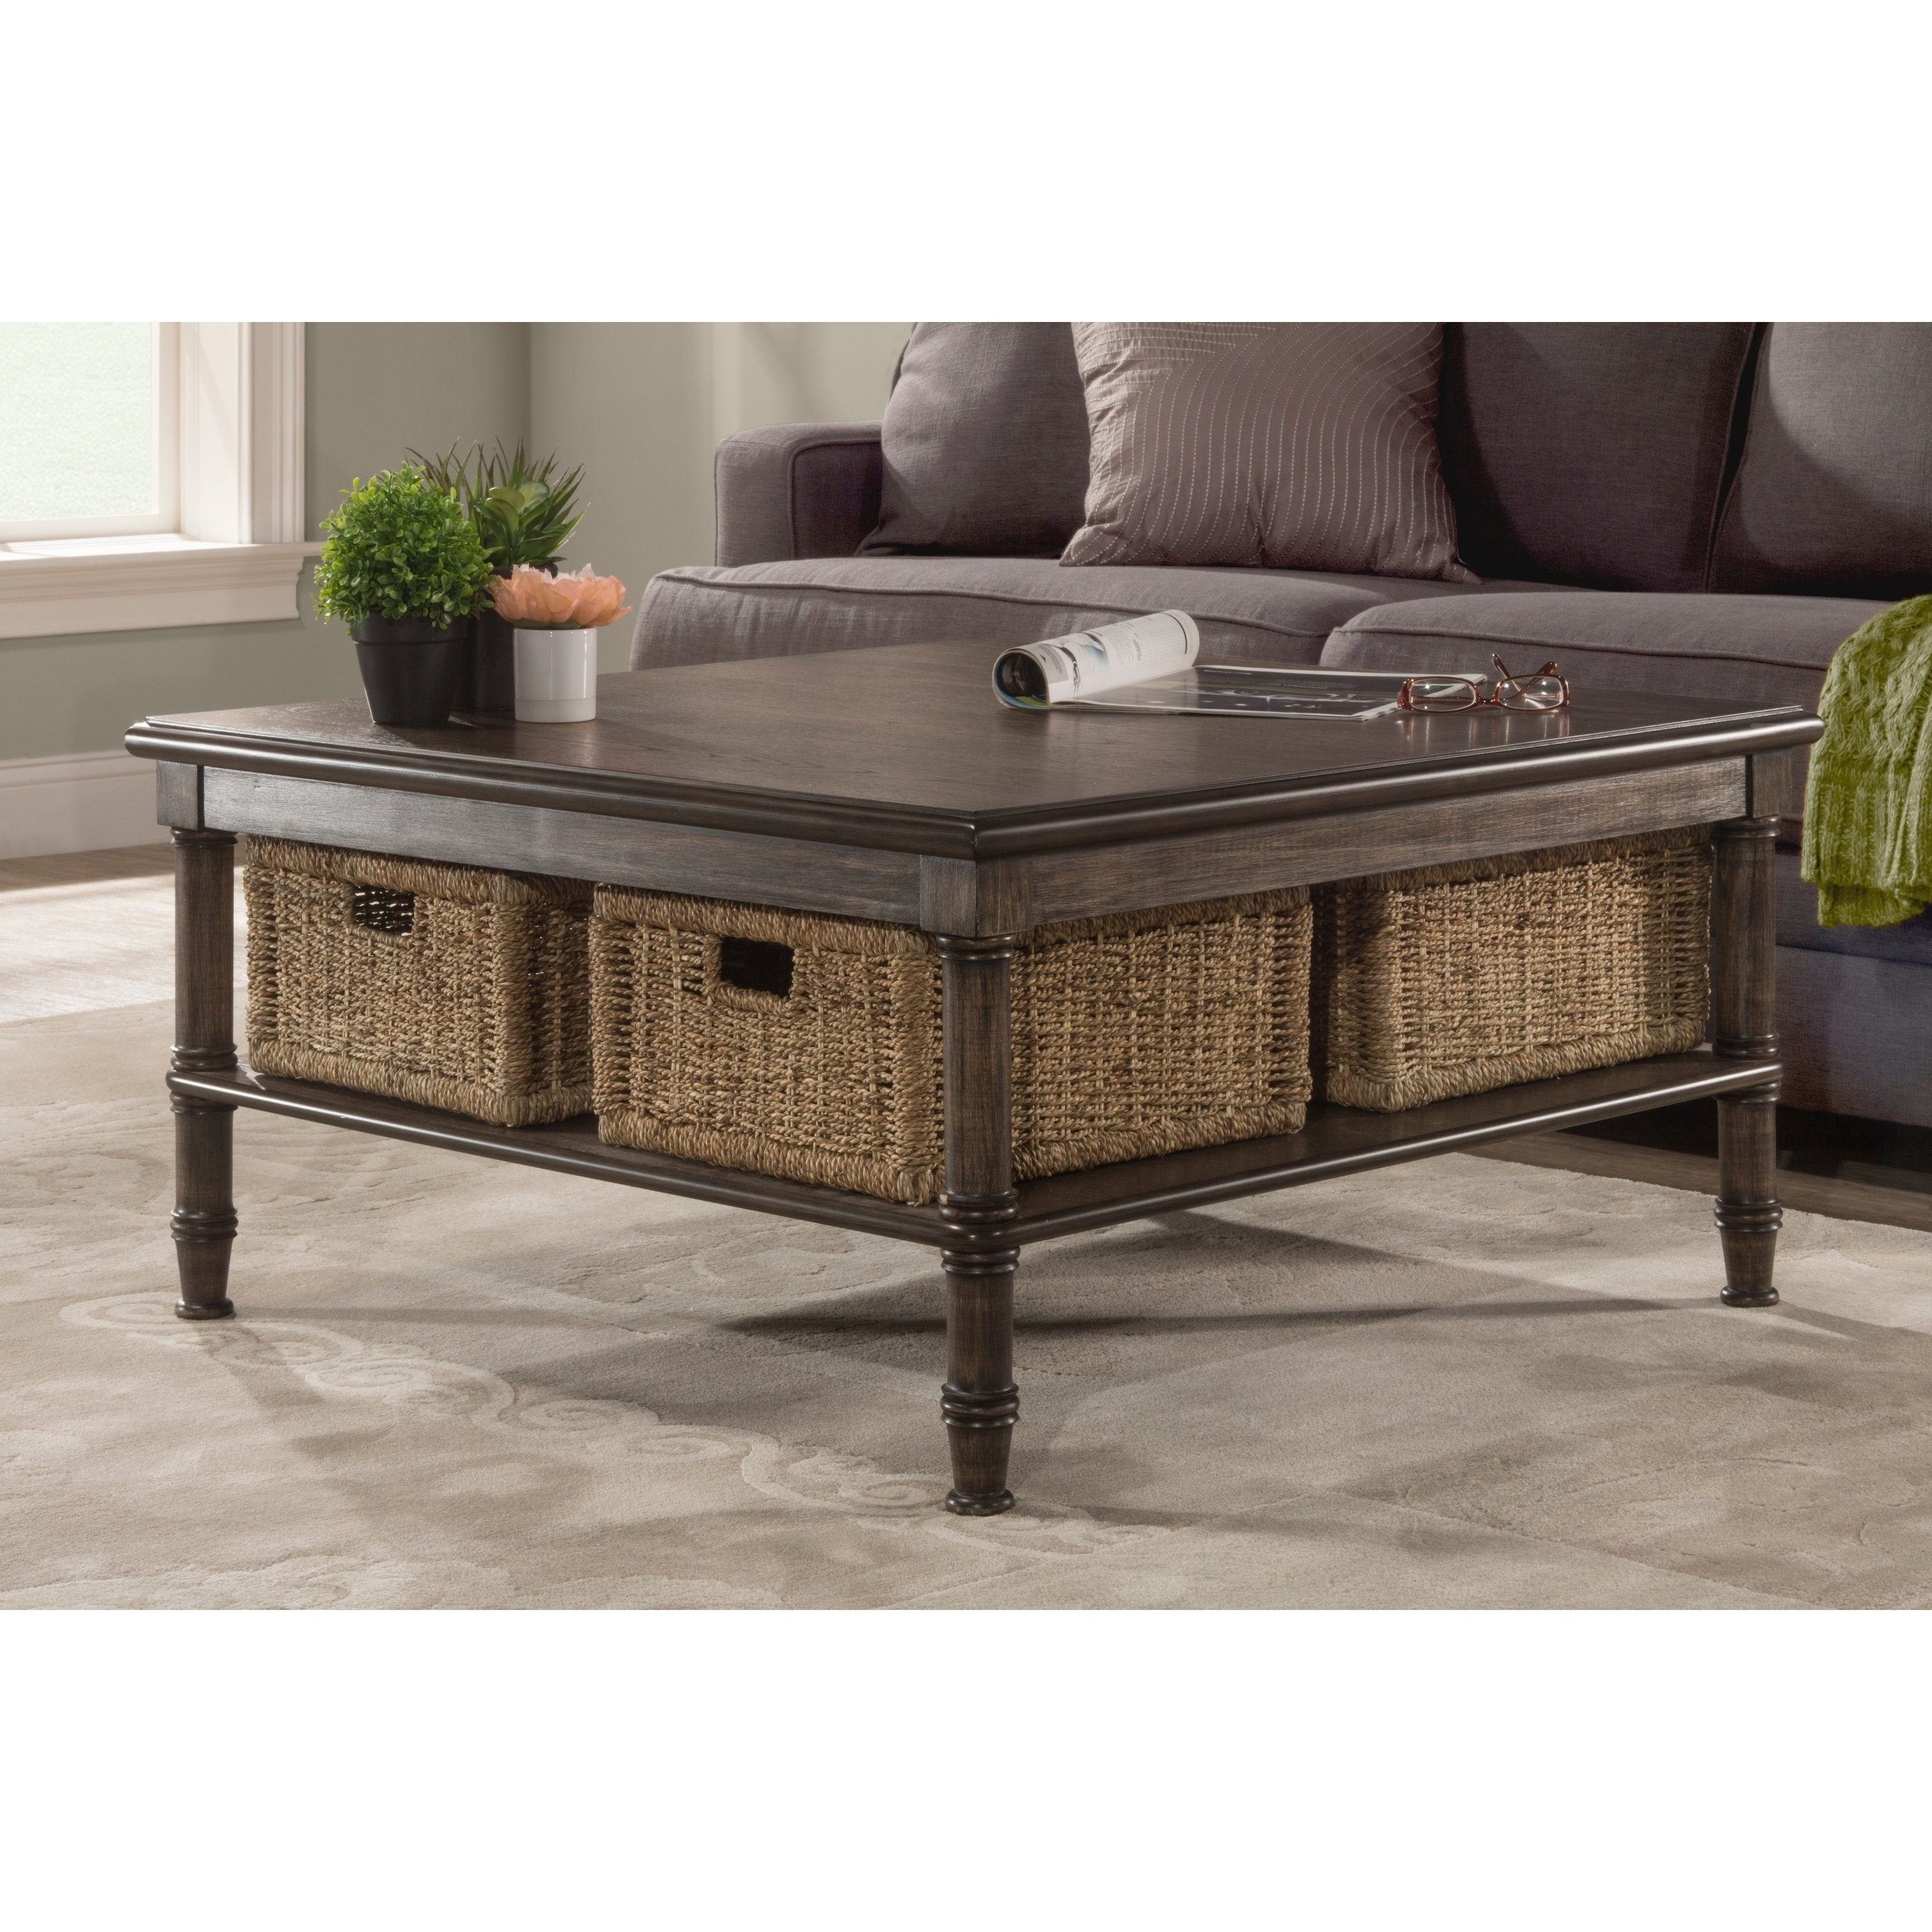 Most Recent Seneca Lift Top Cocktail Tables Within Shop Seneca Coffee Table – 4 Baskets Included – Free Shipping Today (View 2 of 20)